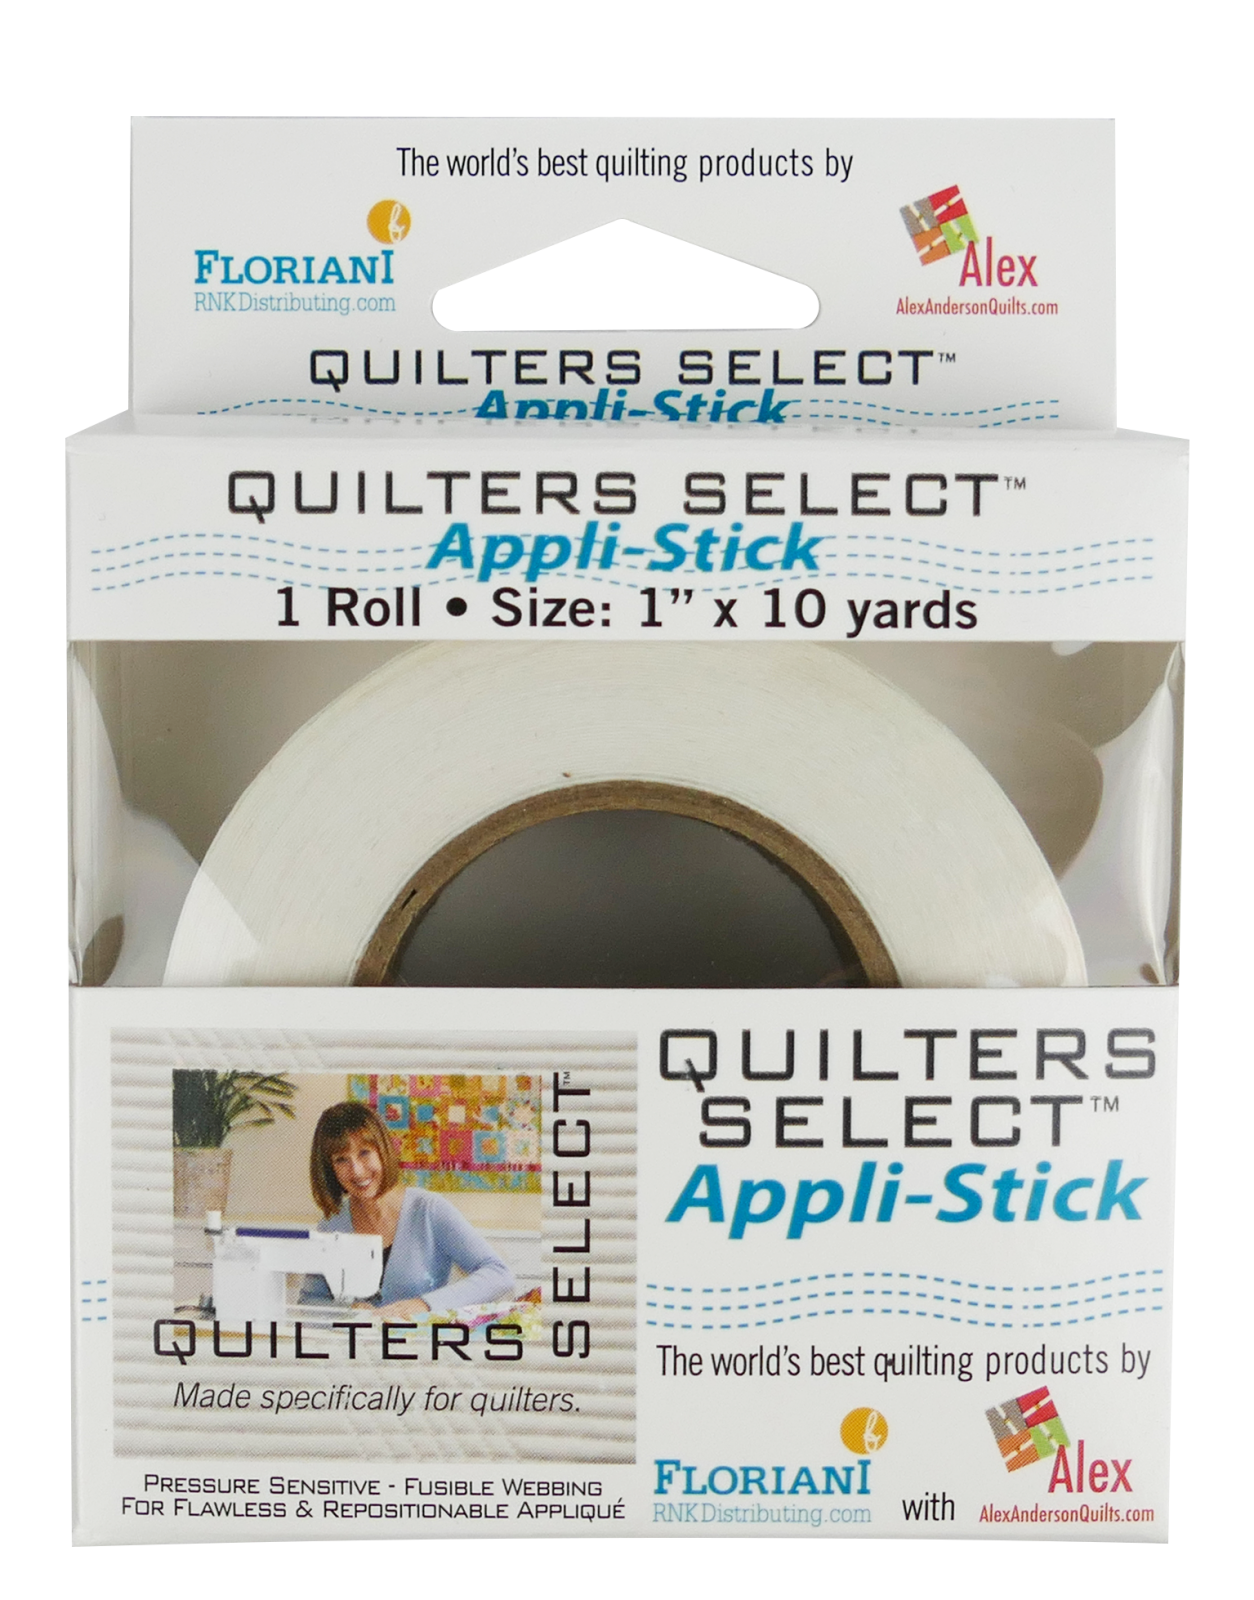 Quilters Select Appli Stick 1 x 10 yards